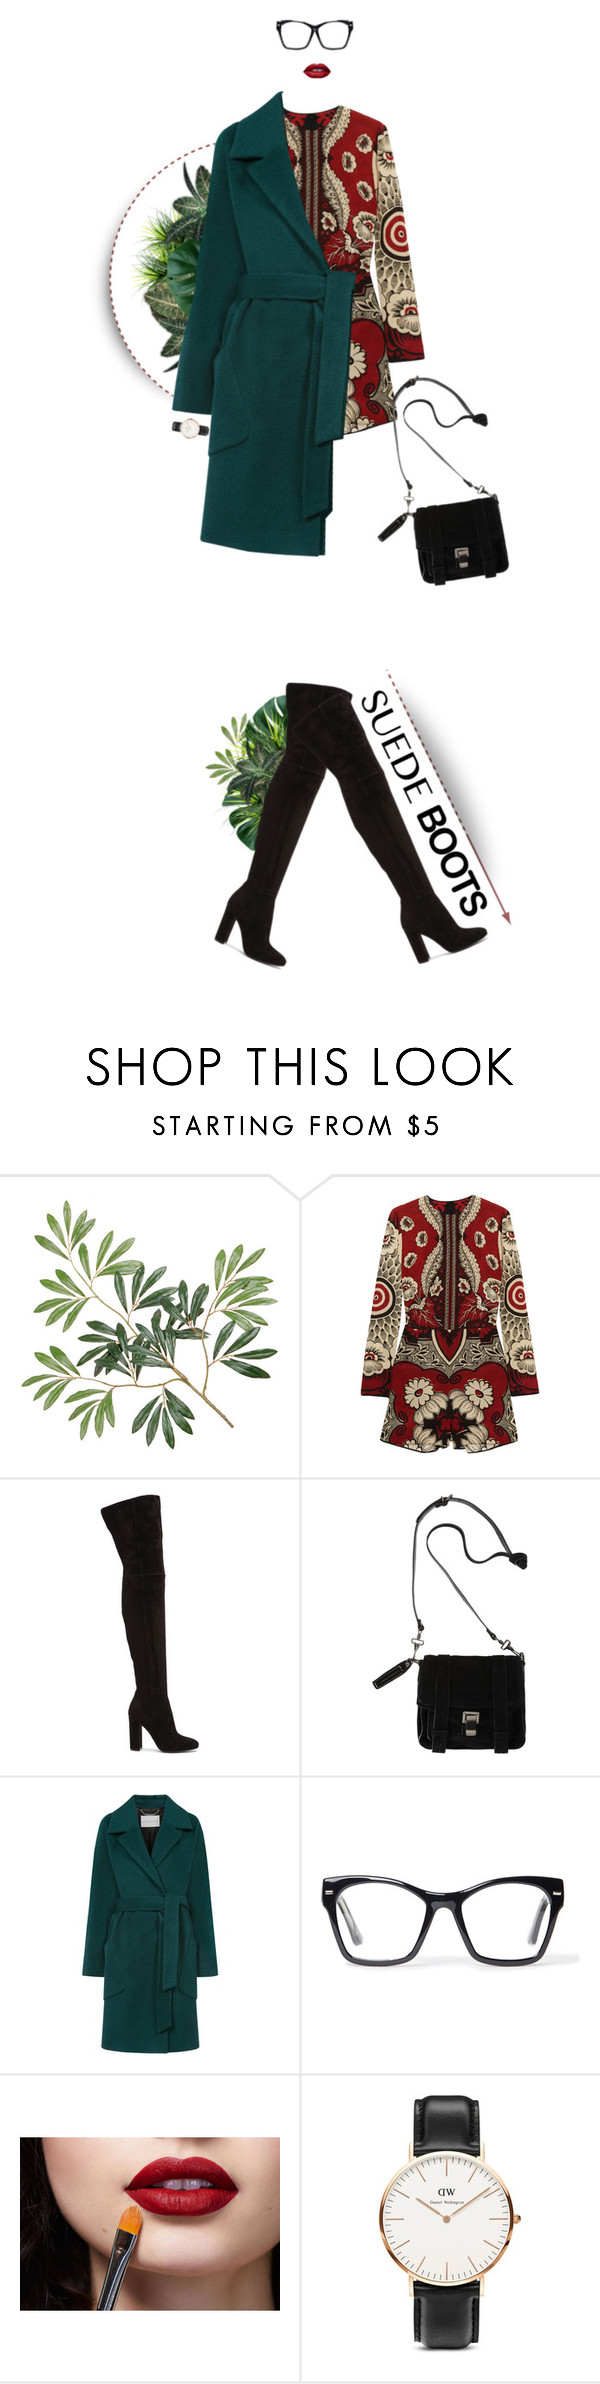 """""""I was hoping you would come around #269"""" by beliz-yilmazerli ❤ liked on Polyvore featuring Valentino, Gianvito Rossi, Proenza Schouler, Windsmoor, Spitfire and Daniel Wellington"""